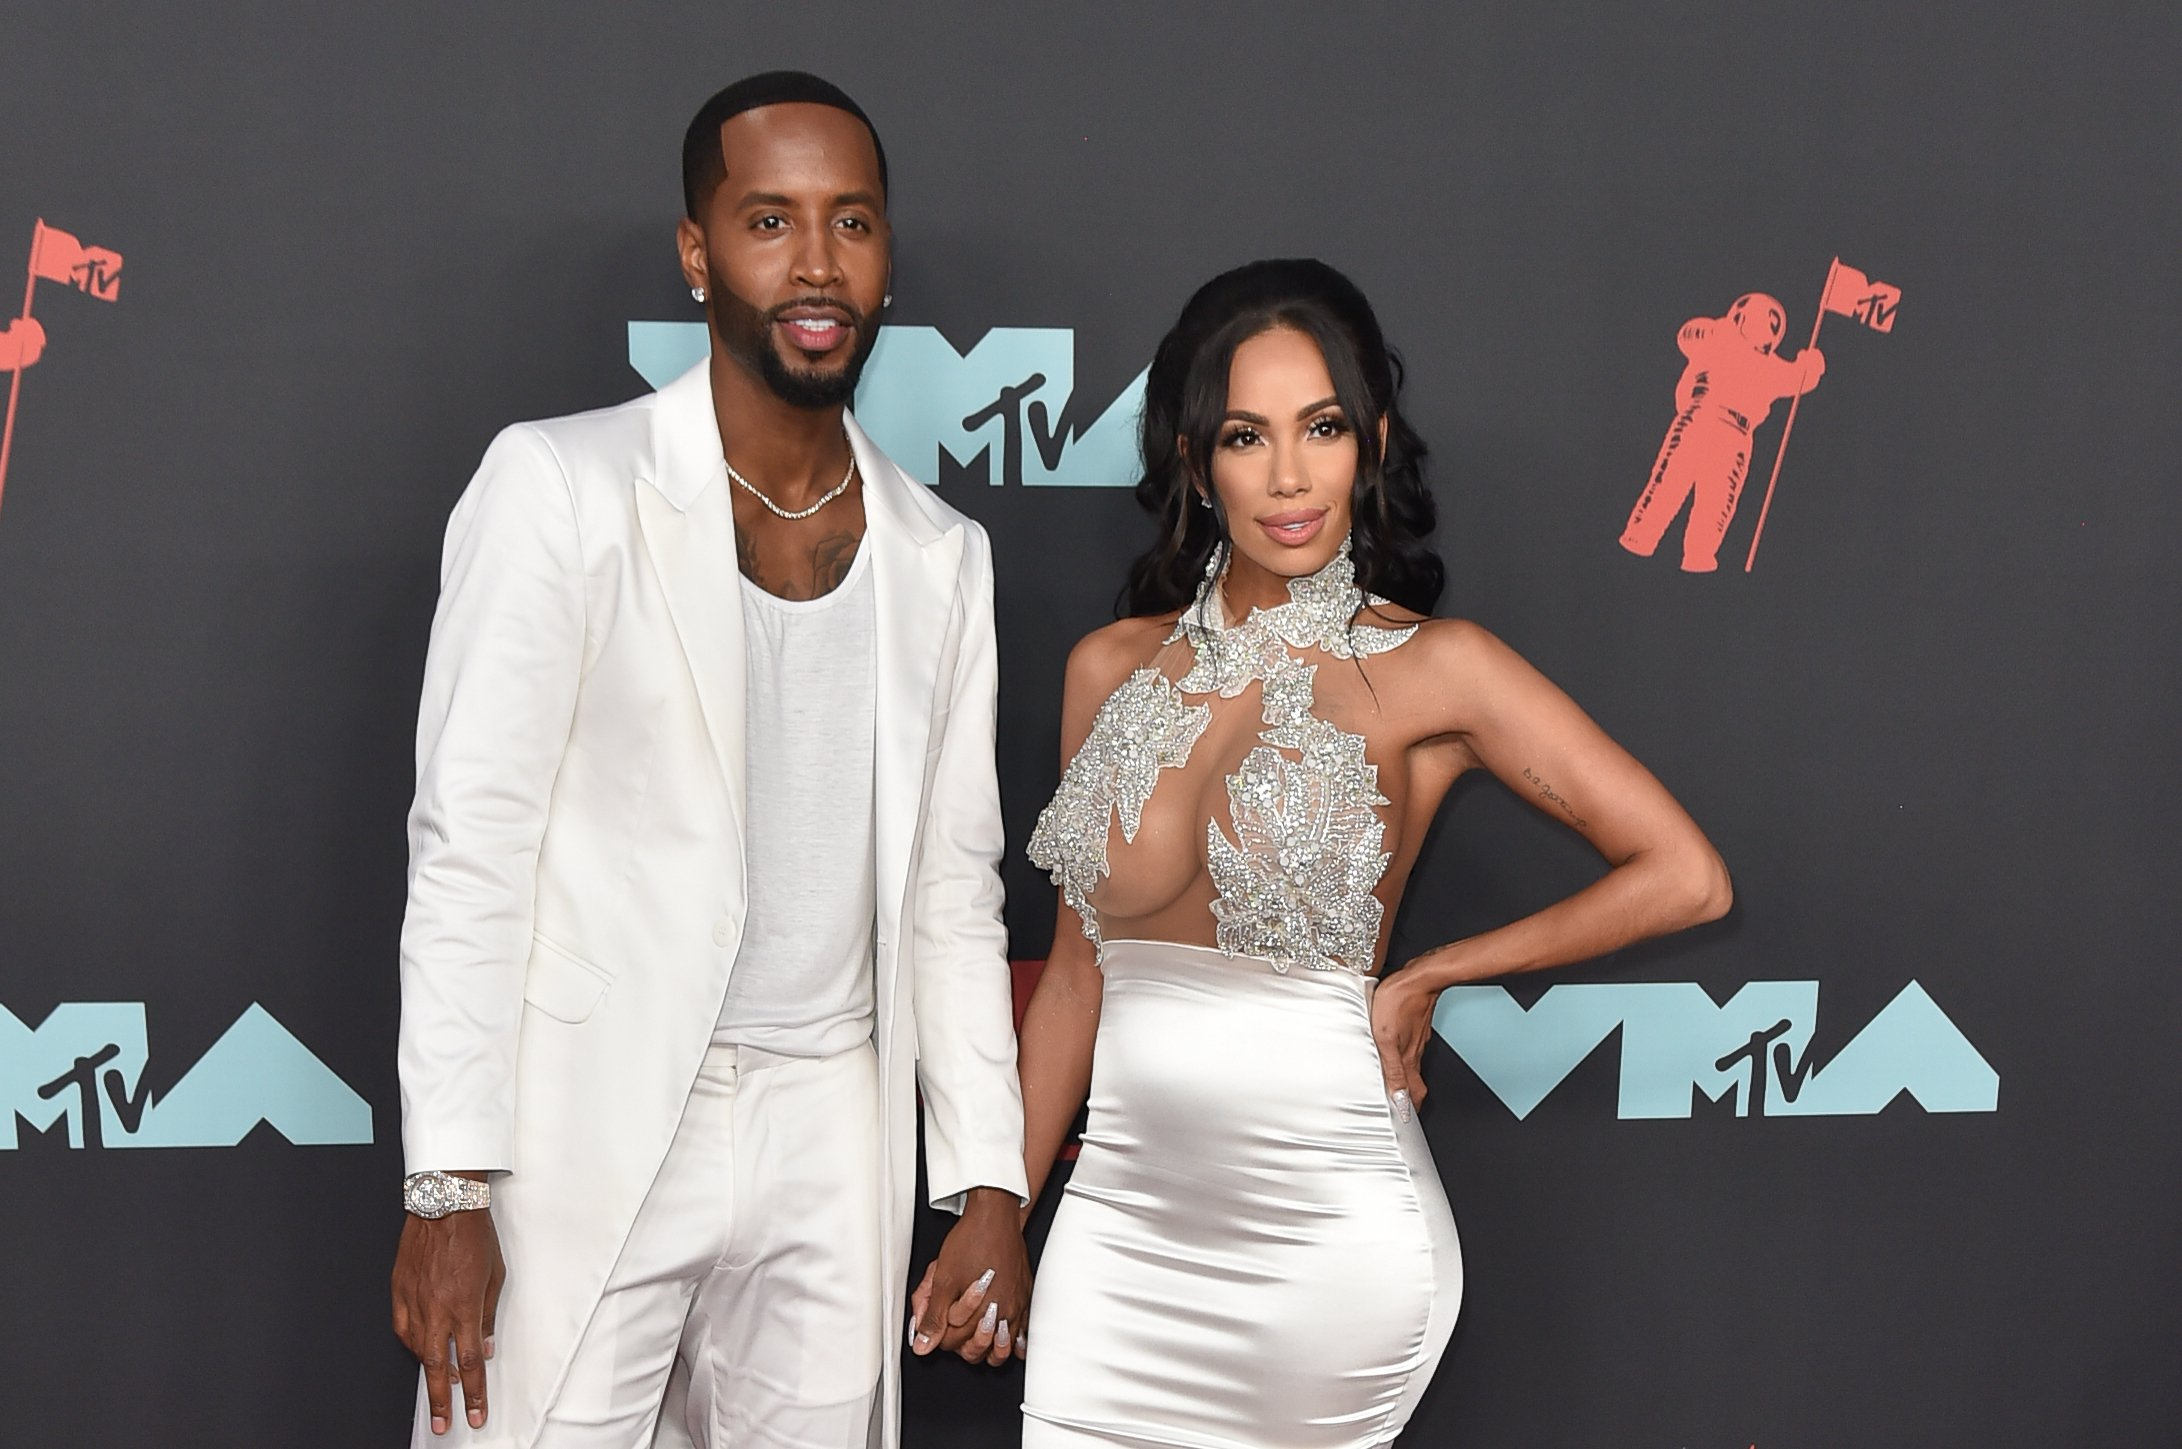 Safaree Samuels and Erica Mena at the 2019 MTV Video Music Awards at Prudential Center on August 26, 2019. | Photo: Getty Images